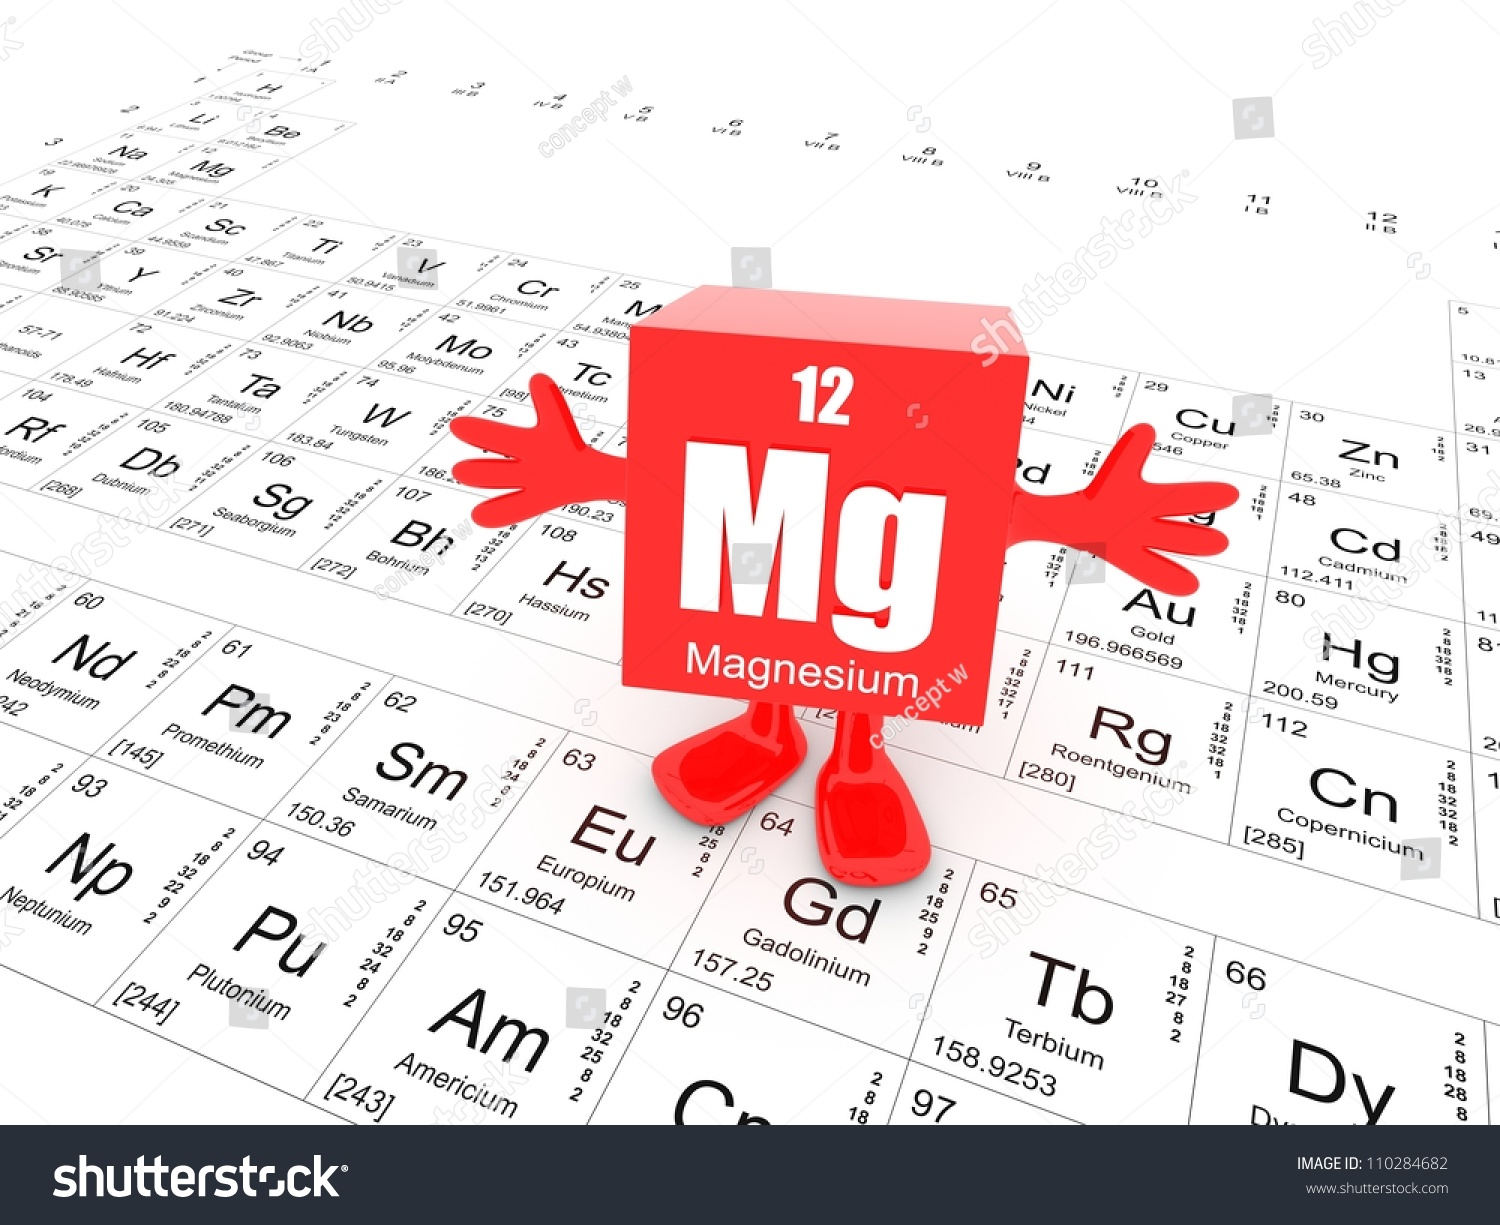 My name magnesium this periodic table stock illustration 110284682 my name is magnesium and this is the periodic table urtaz